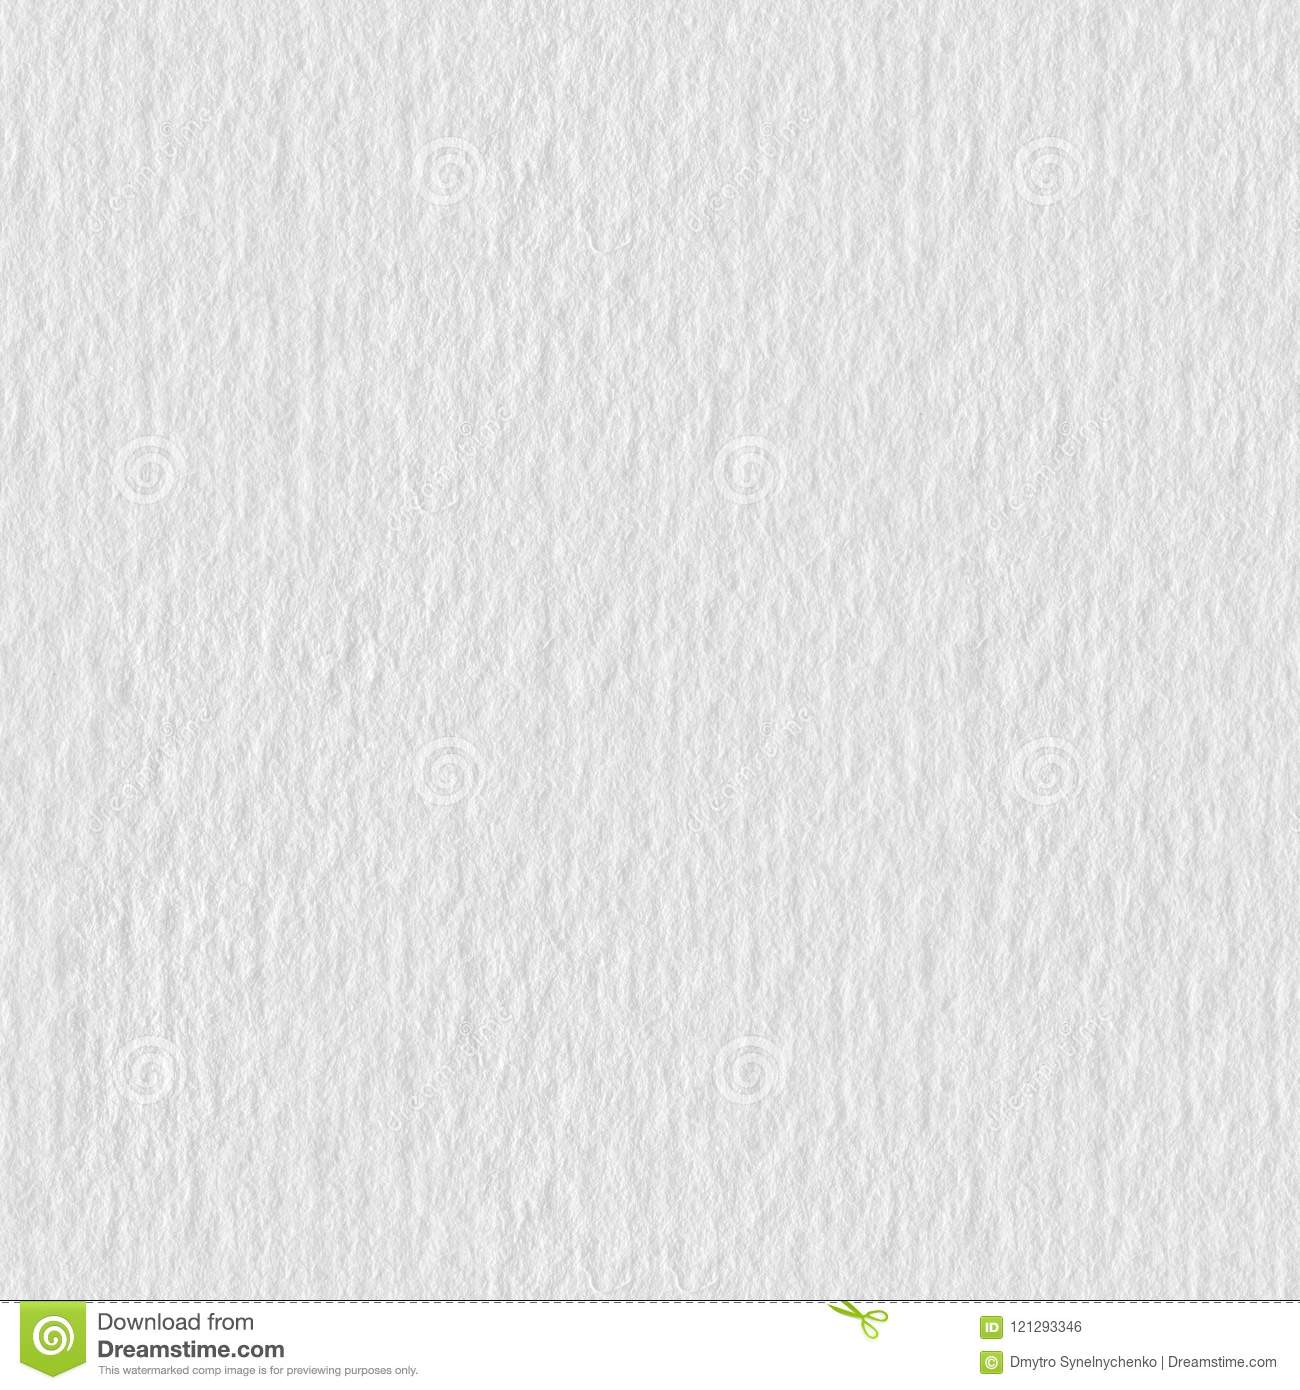 White paper background, rough pattern stationery texture. Seamle